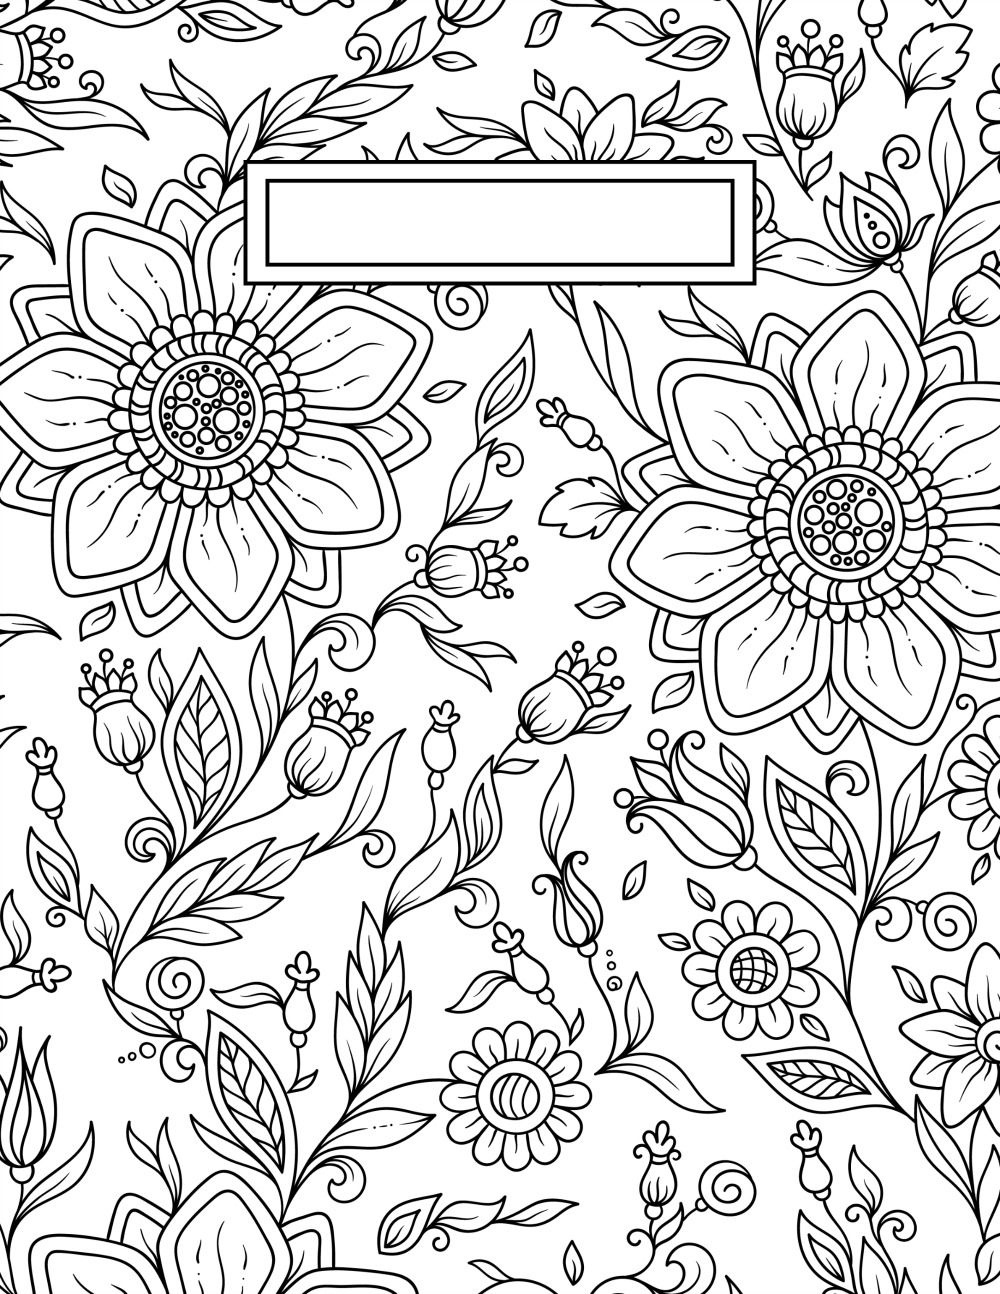 Back To School Binder Cover Adult Coloring Pages | Craft Ideas - Free Printable Binder Covers To Color